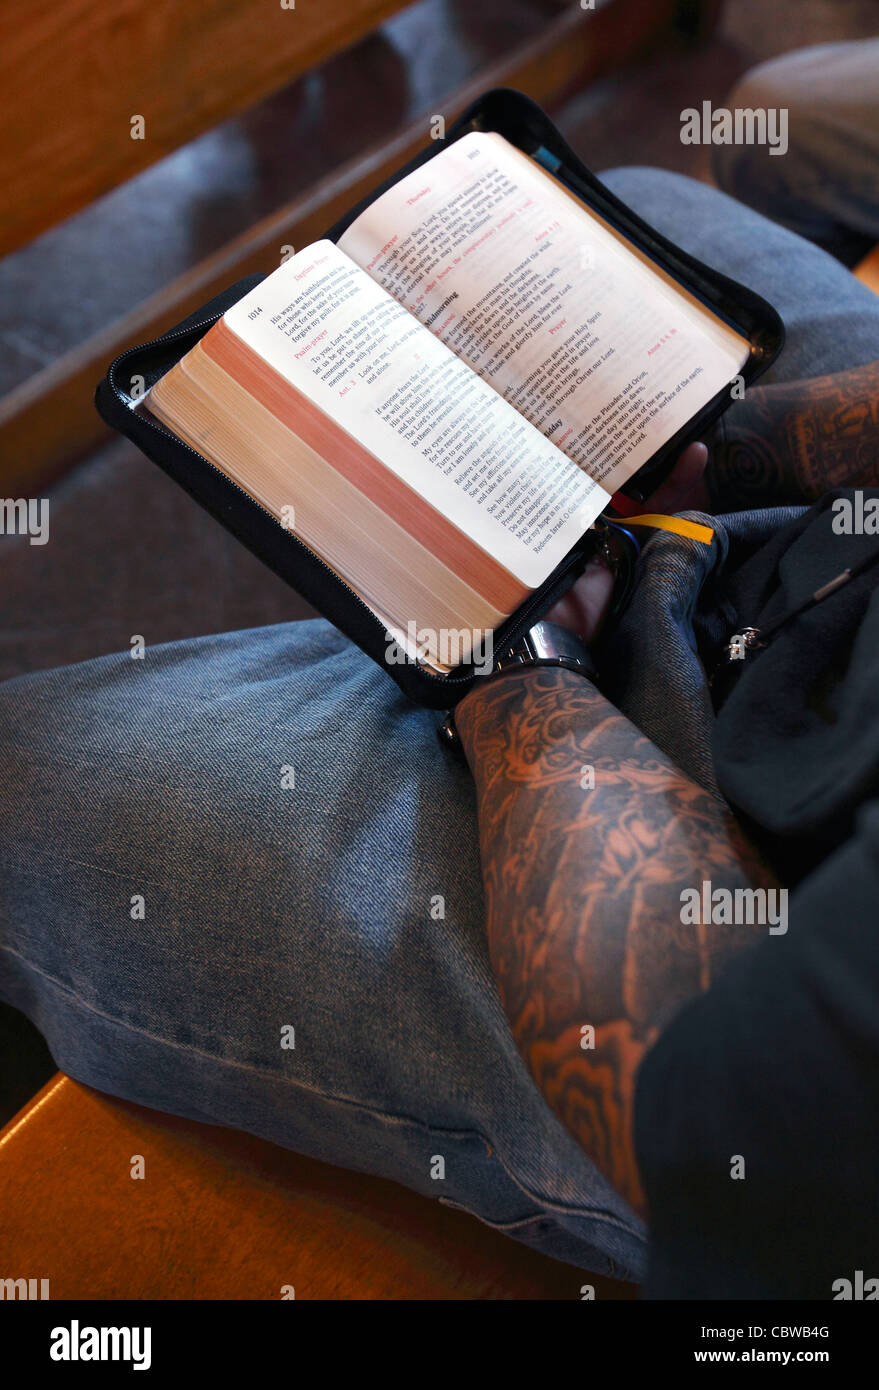 A prisoner reads a bible in the Dominican lay program at Massachusetts Correctional Institute, Norfolk, Massachusetts - Stock Image